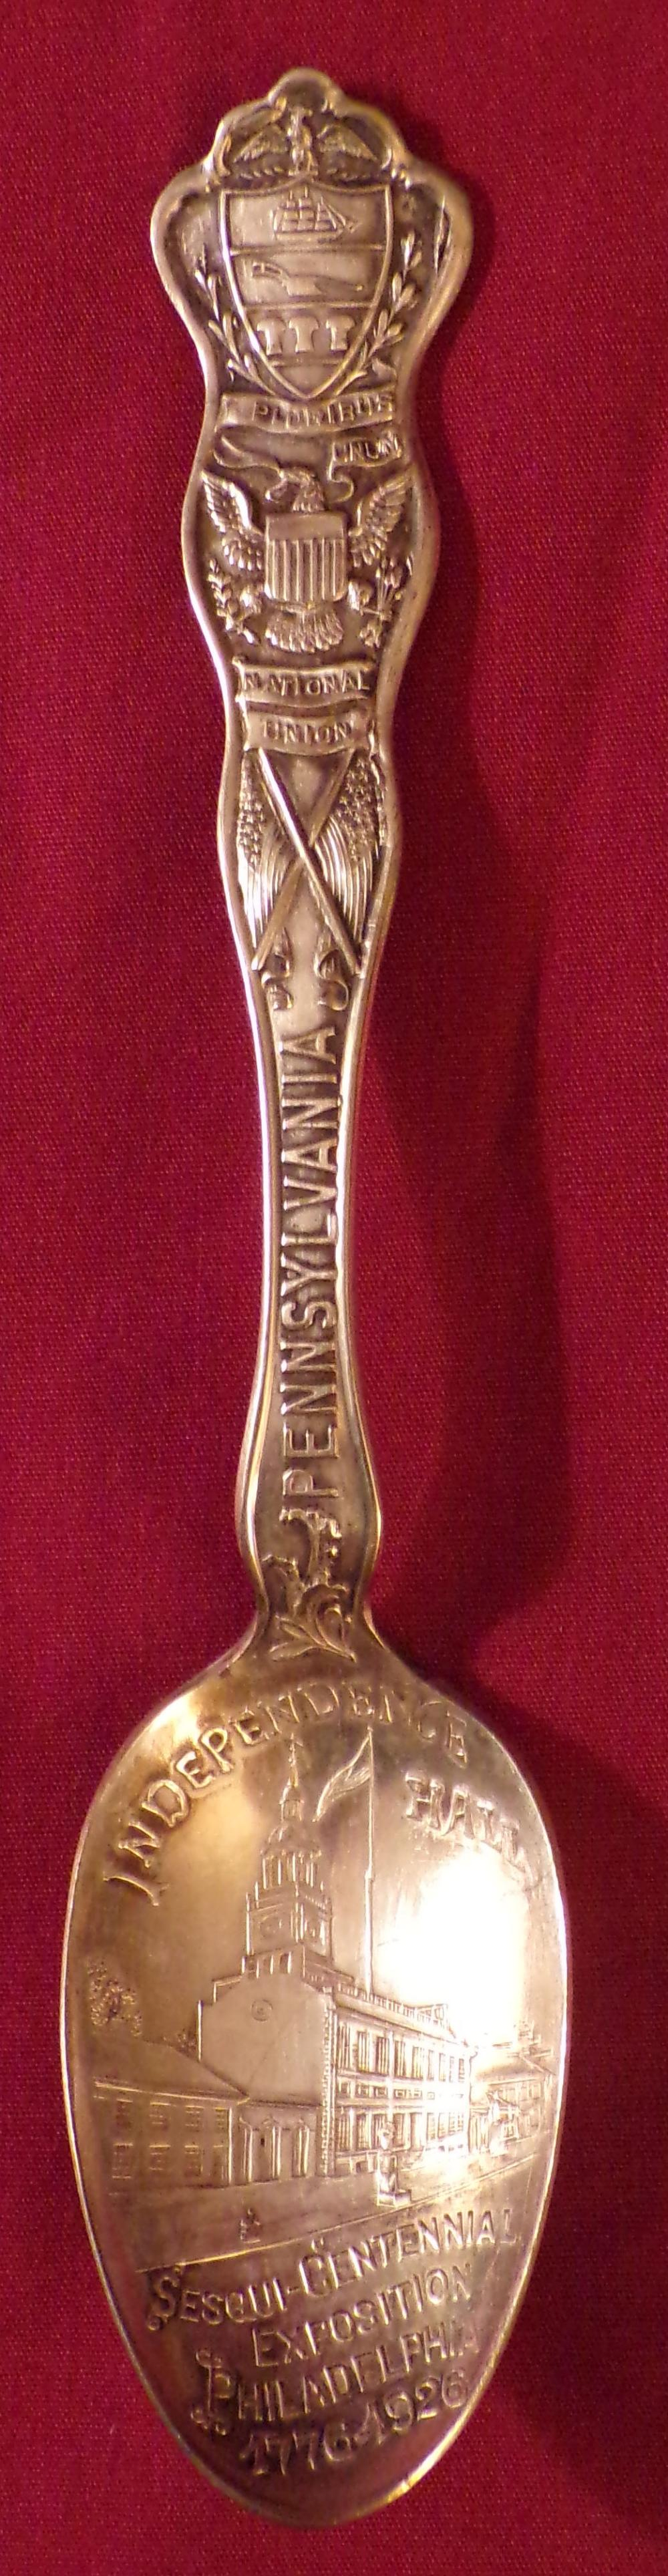 Silver plated commemorative teaspoons marked Pennsylvania – Independence Hall, Sesqui-Centennial Exposition, 1776-1926, by Wallingford Co., A-1